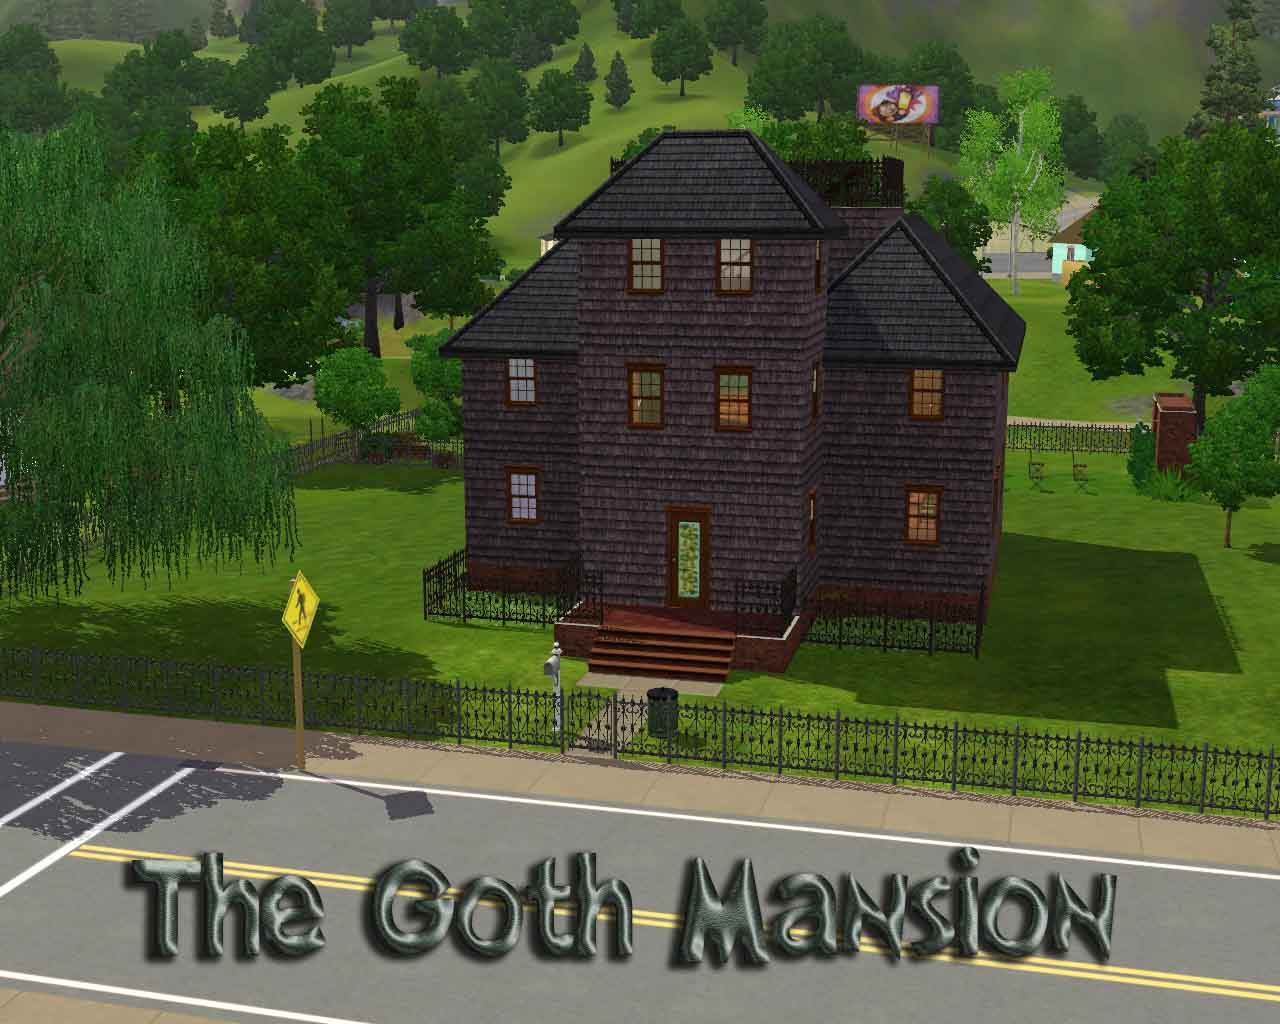 Goth sims 2 content sex objects fucked movie